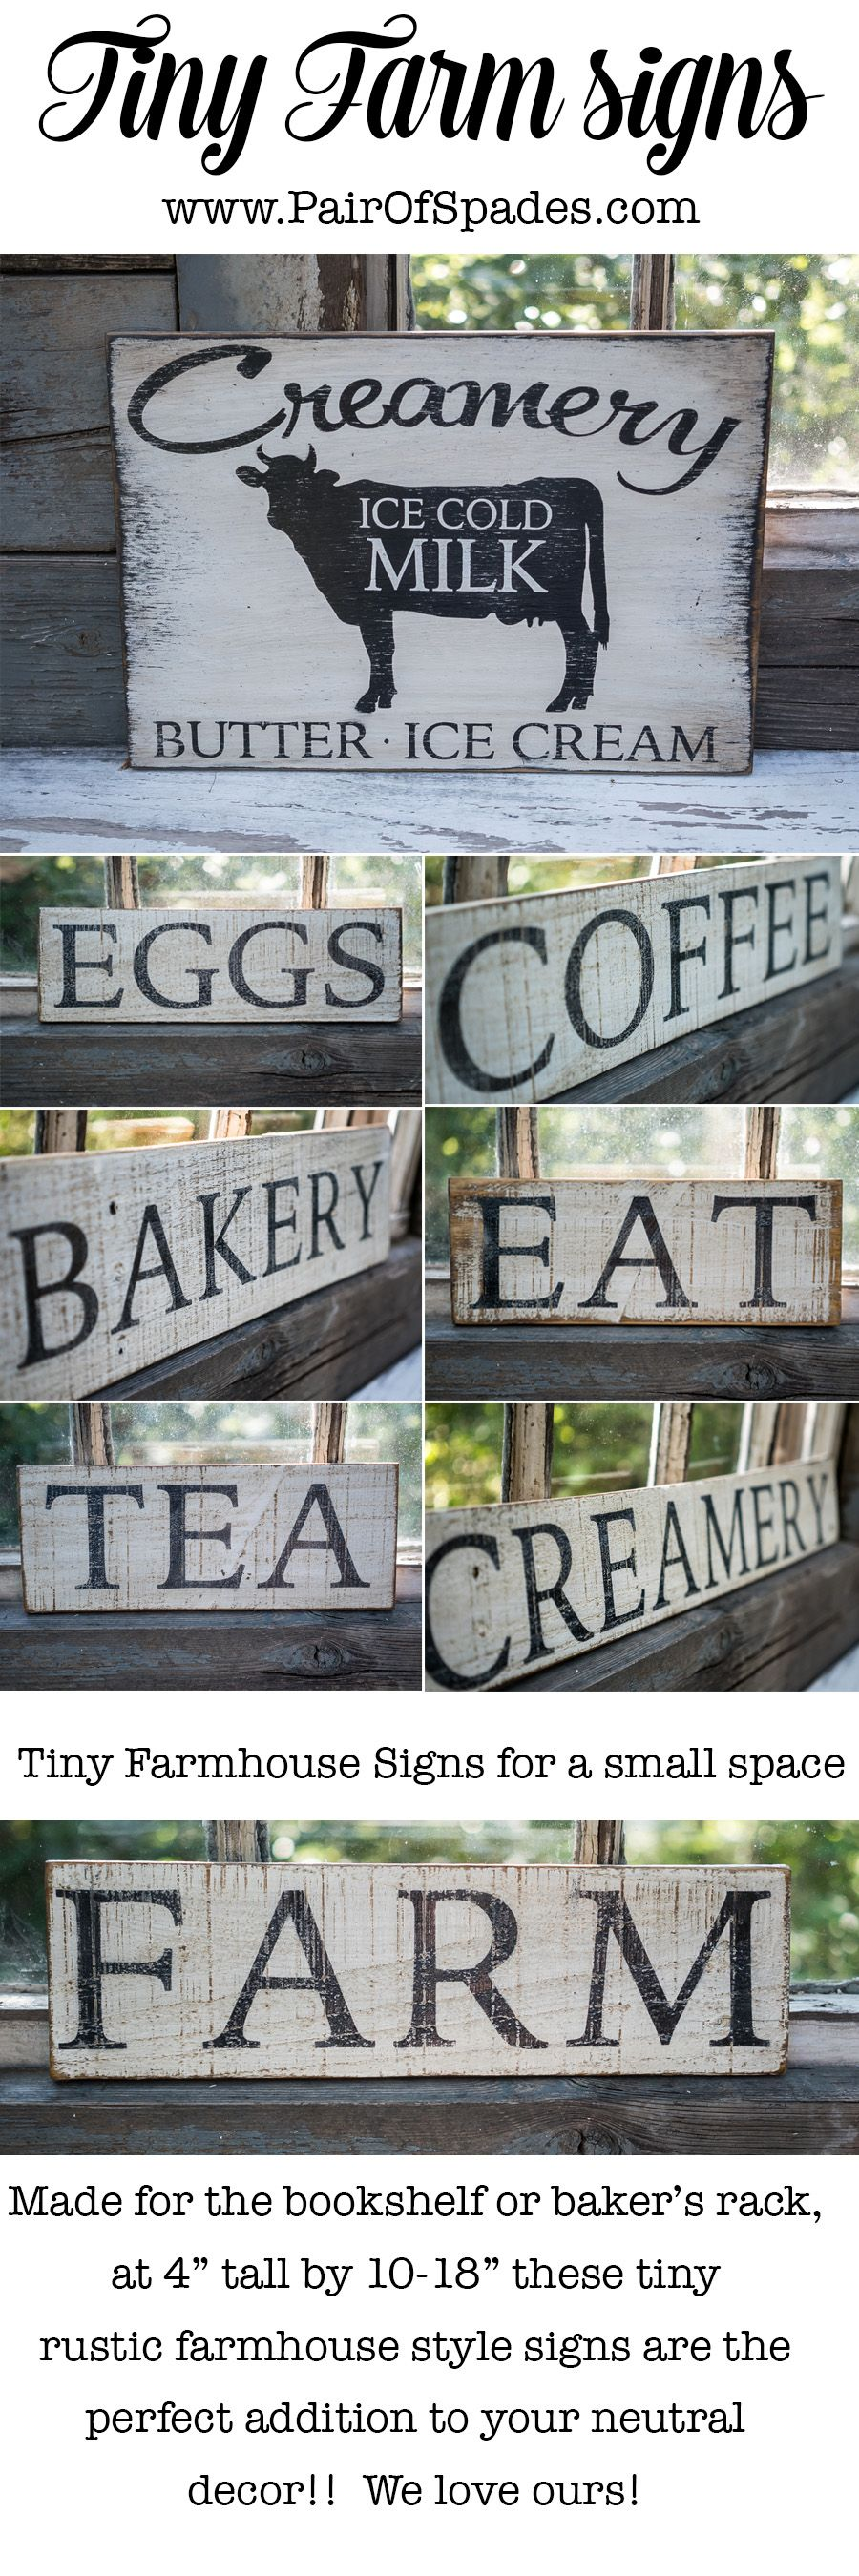 Rustic Farmhouse Signs Super vintage looking and